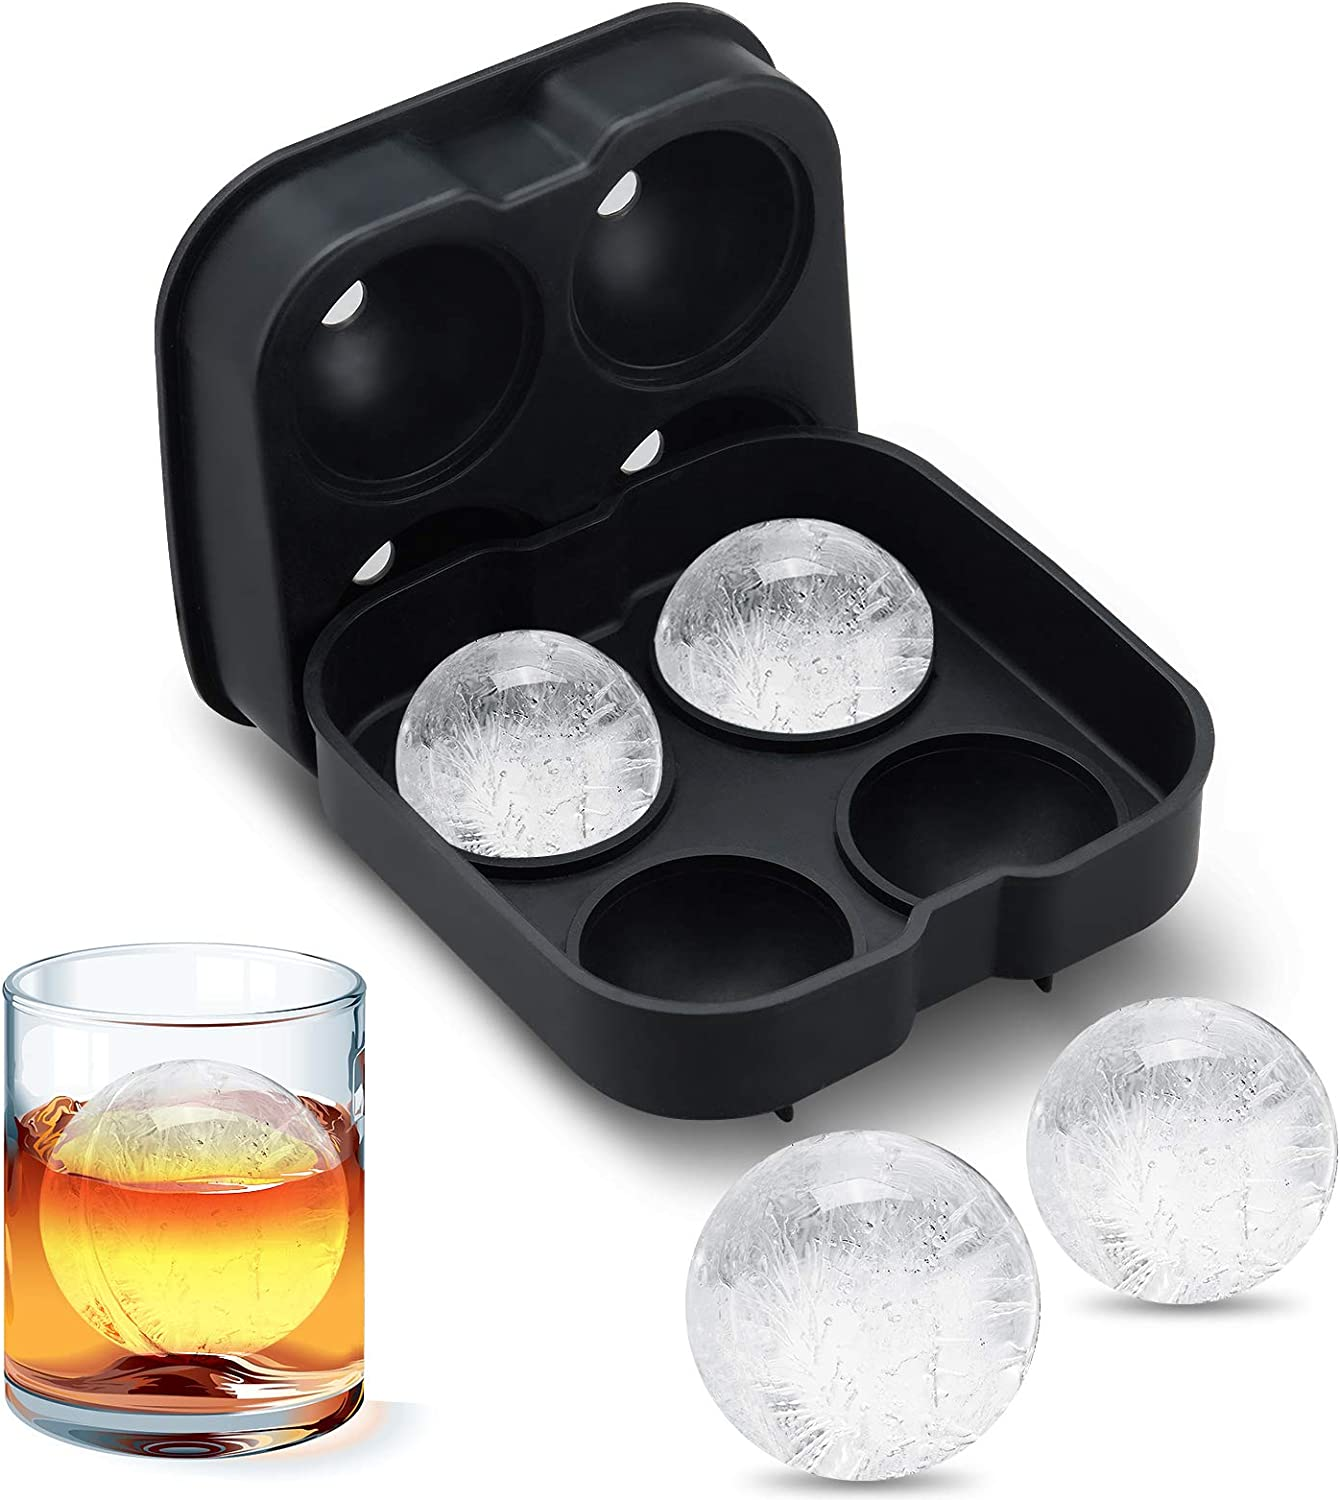 Ice Ball Maker Mold - Flexible Silicone Ice Tray - Novelty Food-Grade Ice Cube Trays – Sphere Ice Cube Mold for Whiskey with 4 X 4.5cm Ball Capacity